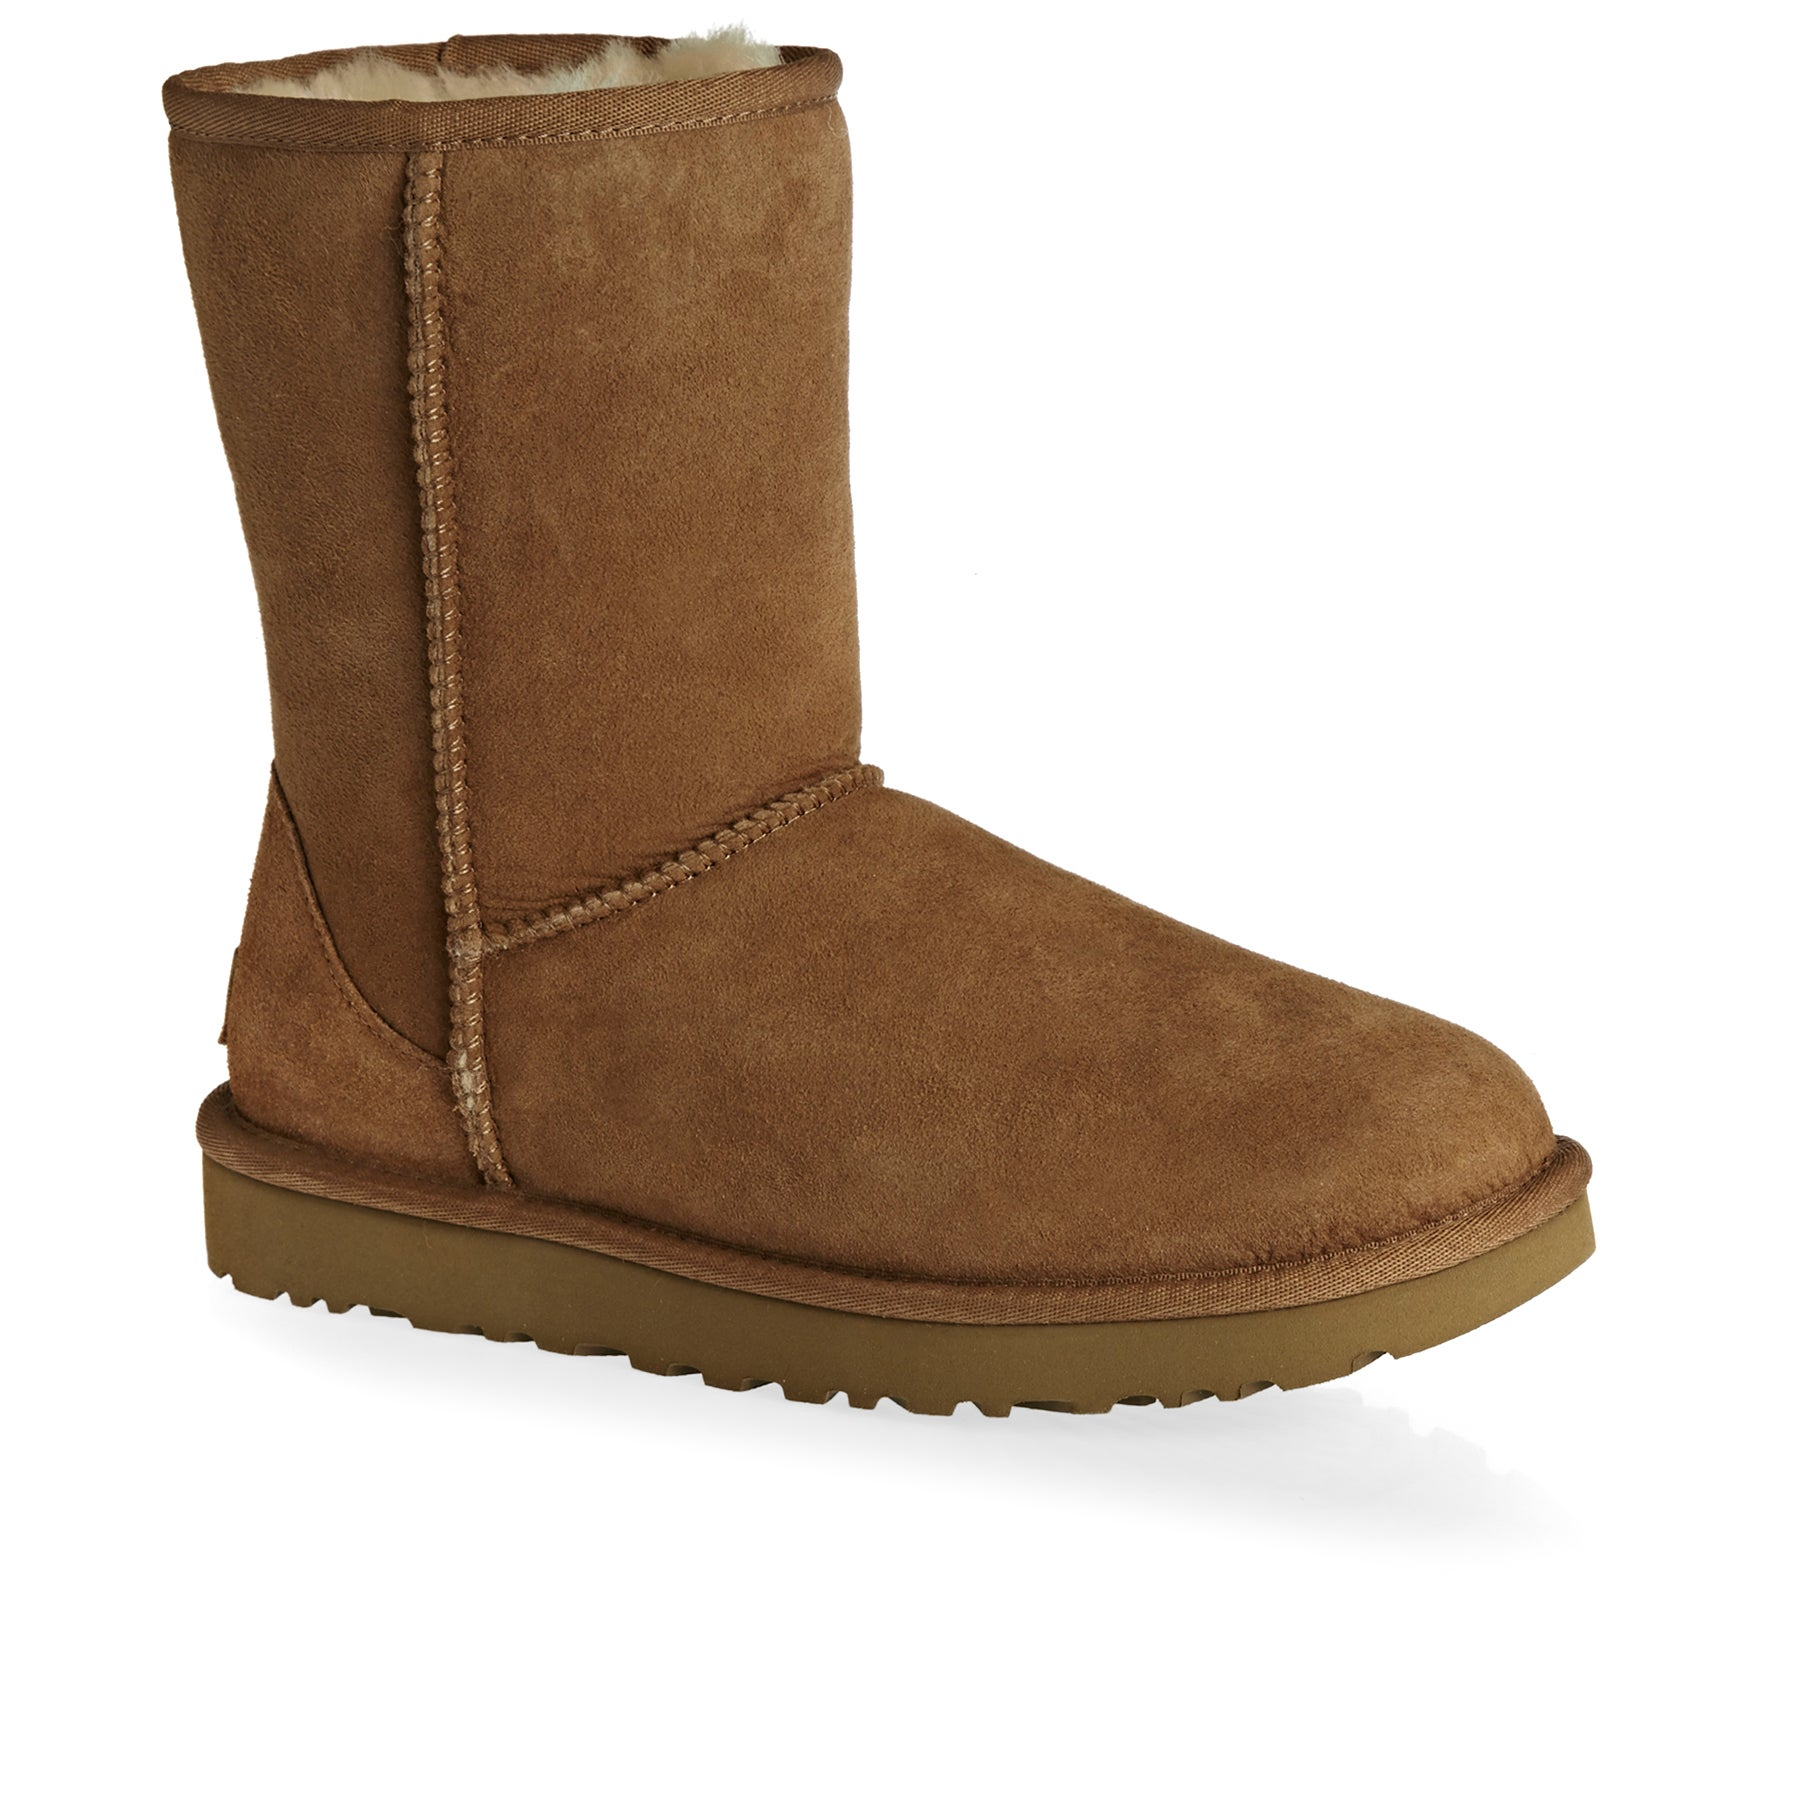 c8f672d5eb91f UGG Classic Short II Womens Boots available from Surfdome